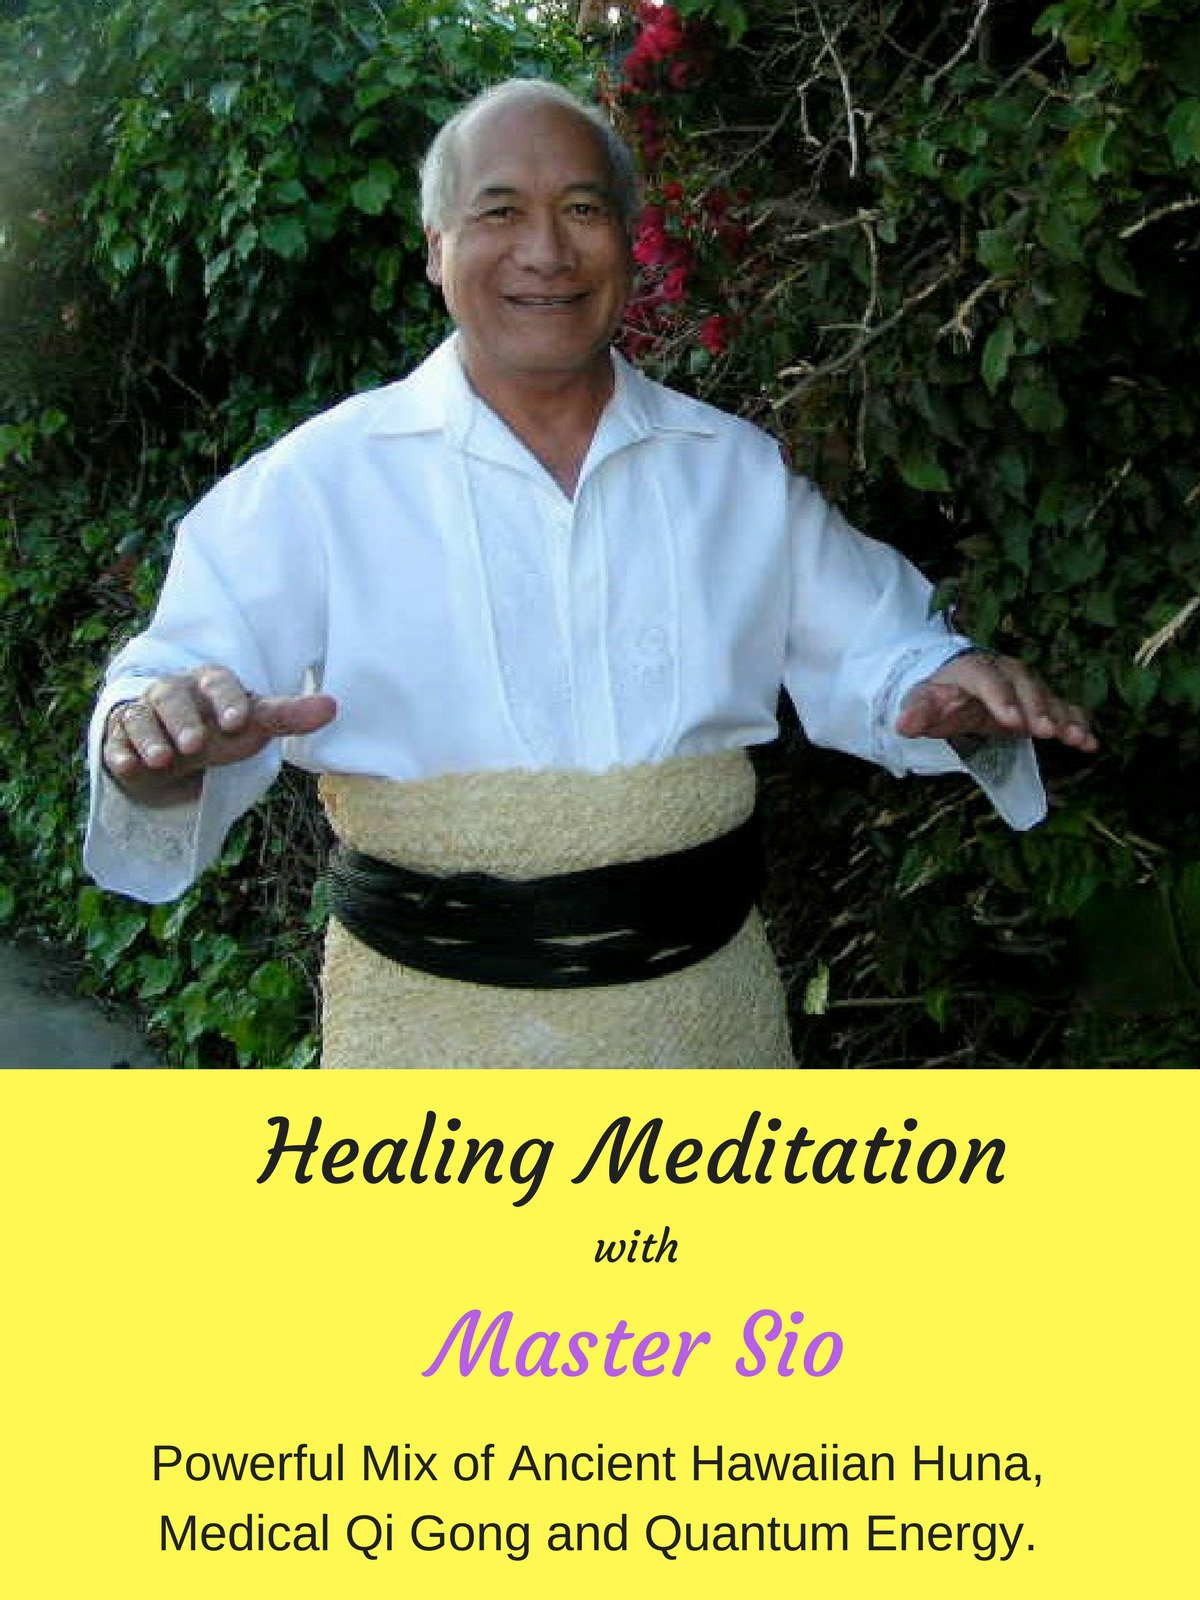 Healing Meditation with Master Sio